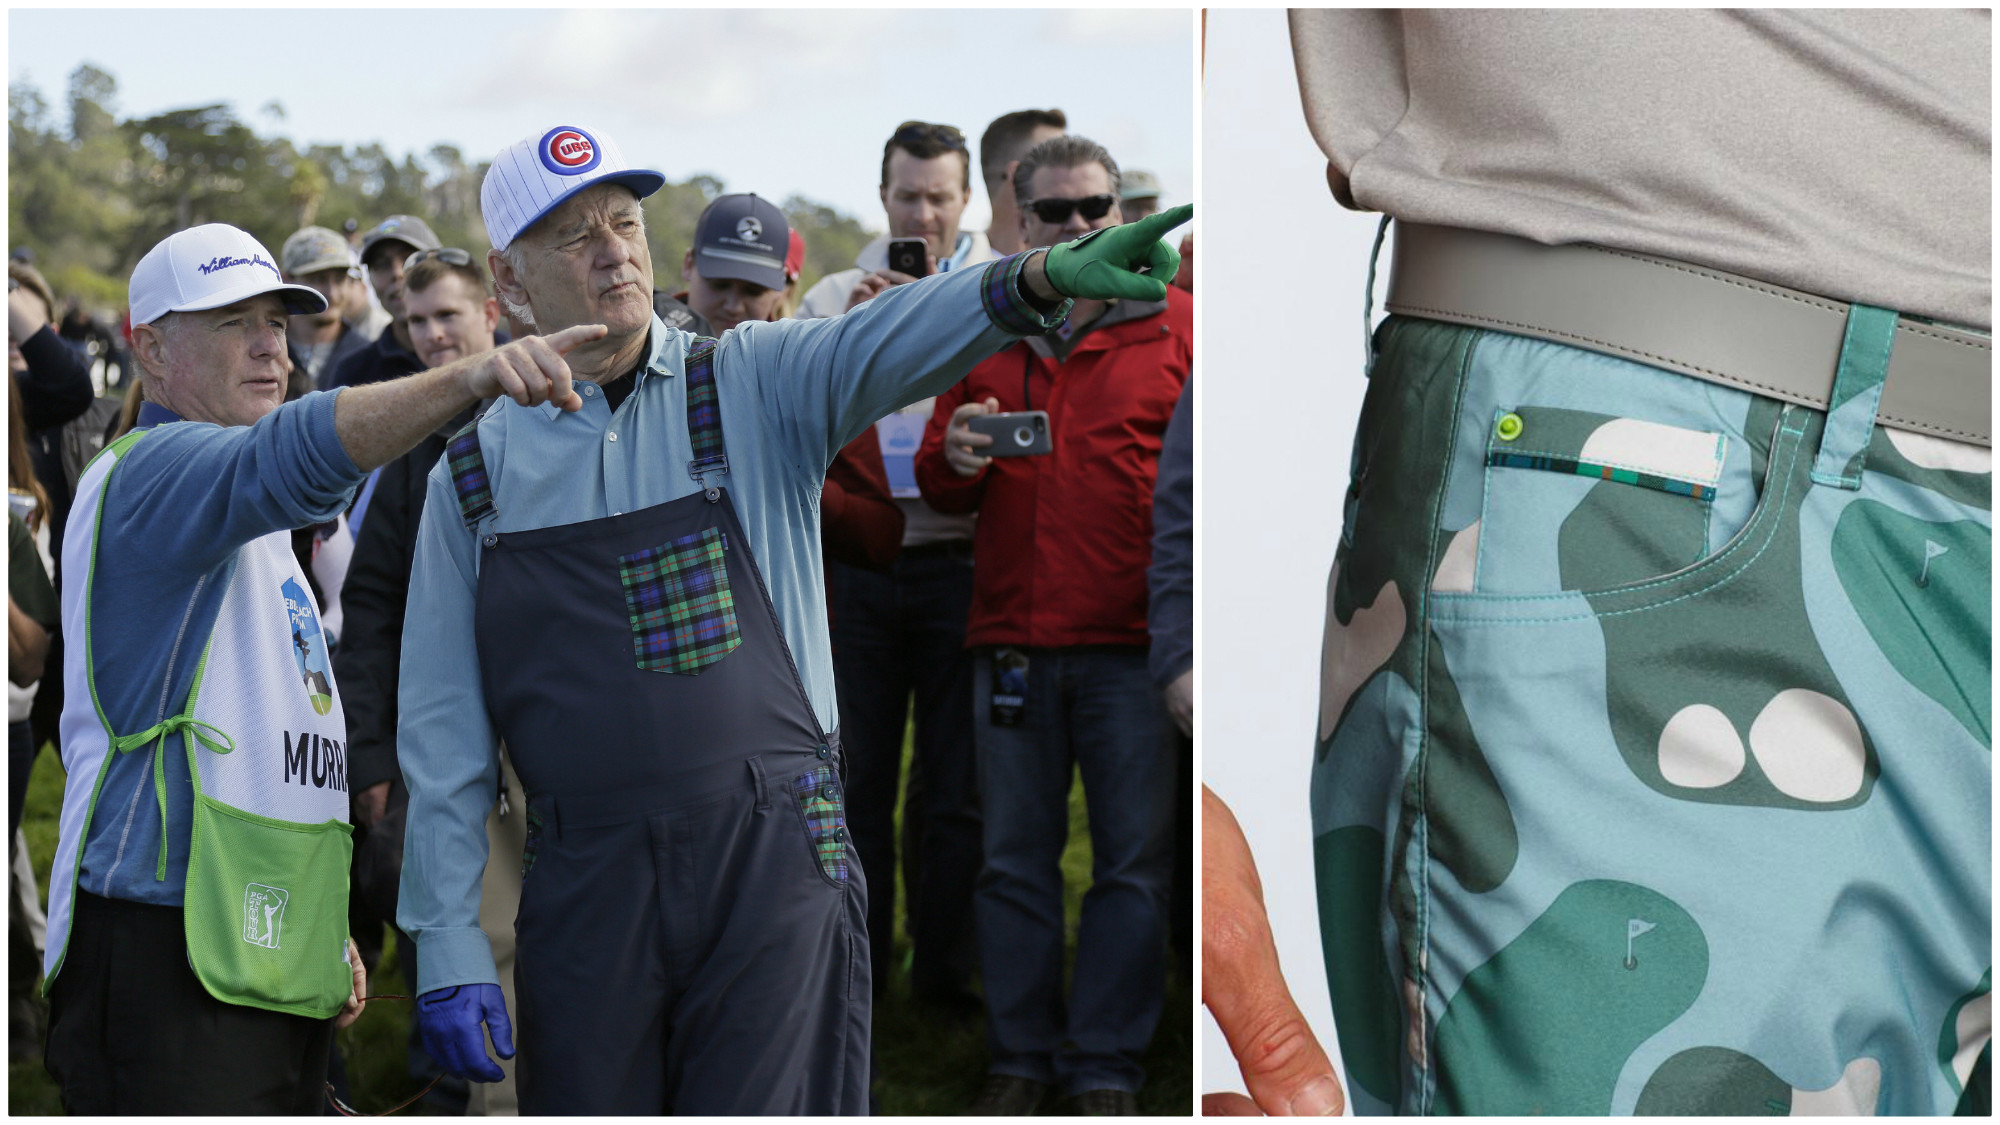 At left, Bill Murray wears a pair of custom overalls bearing a red, green and navy plaid pattern called the Murray family tartan. The pattern appears somewhere on every piece in the collection such as the edge of the ballmarker pocket of the Bunker Camo shorts, right.